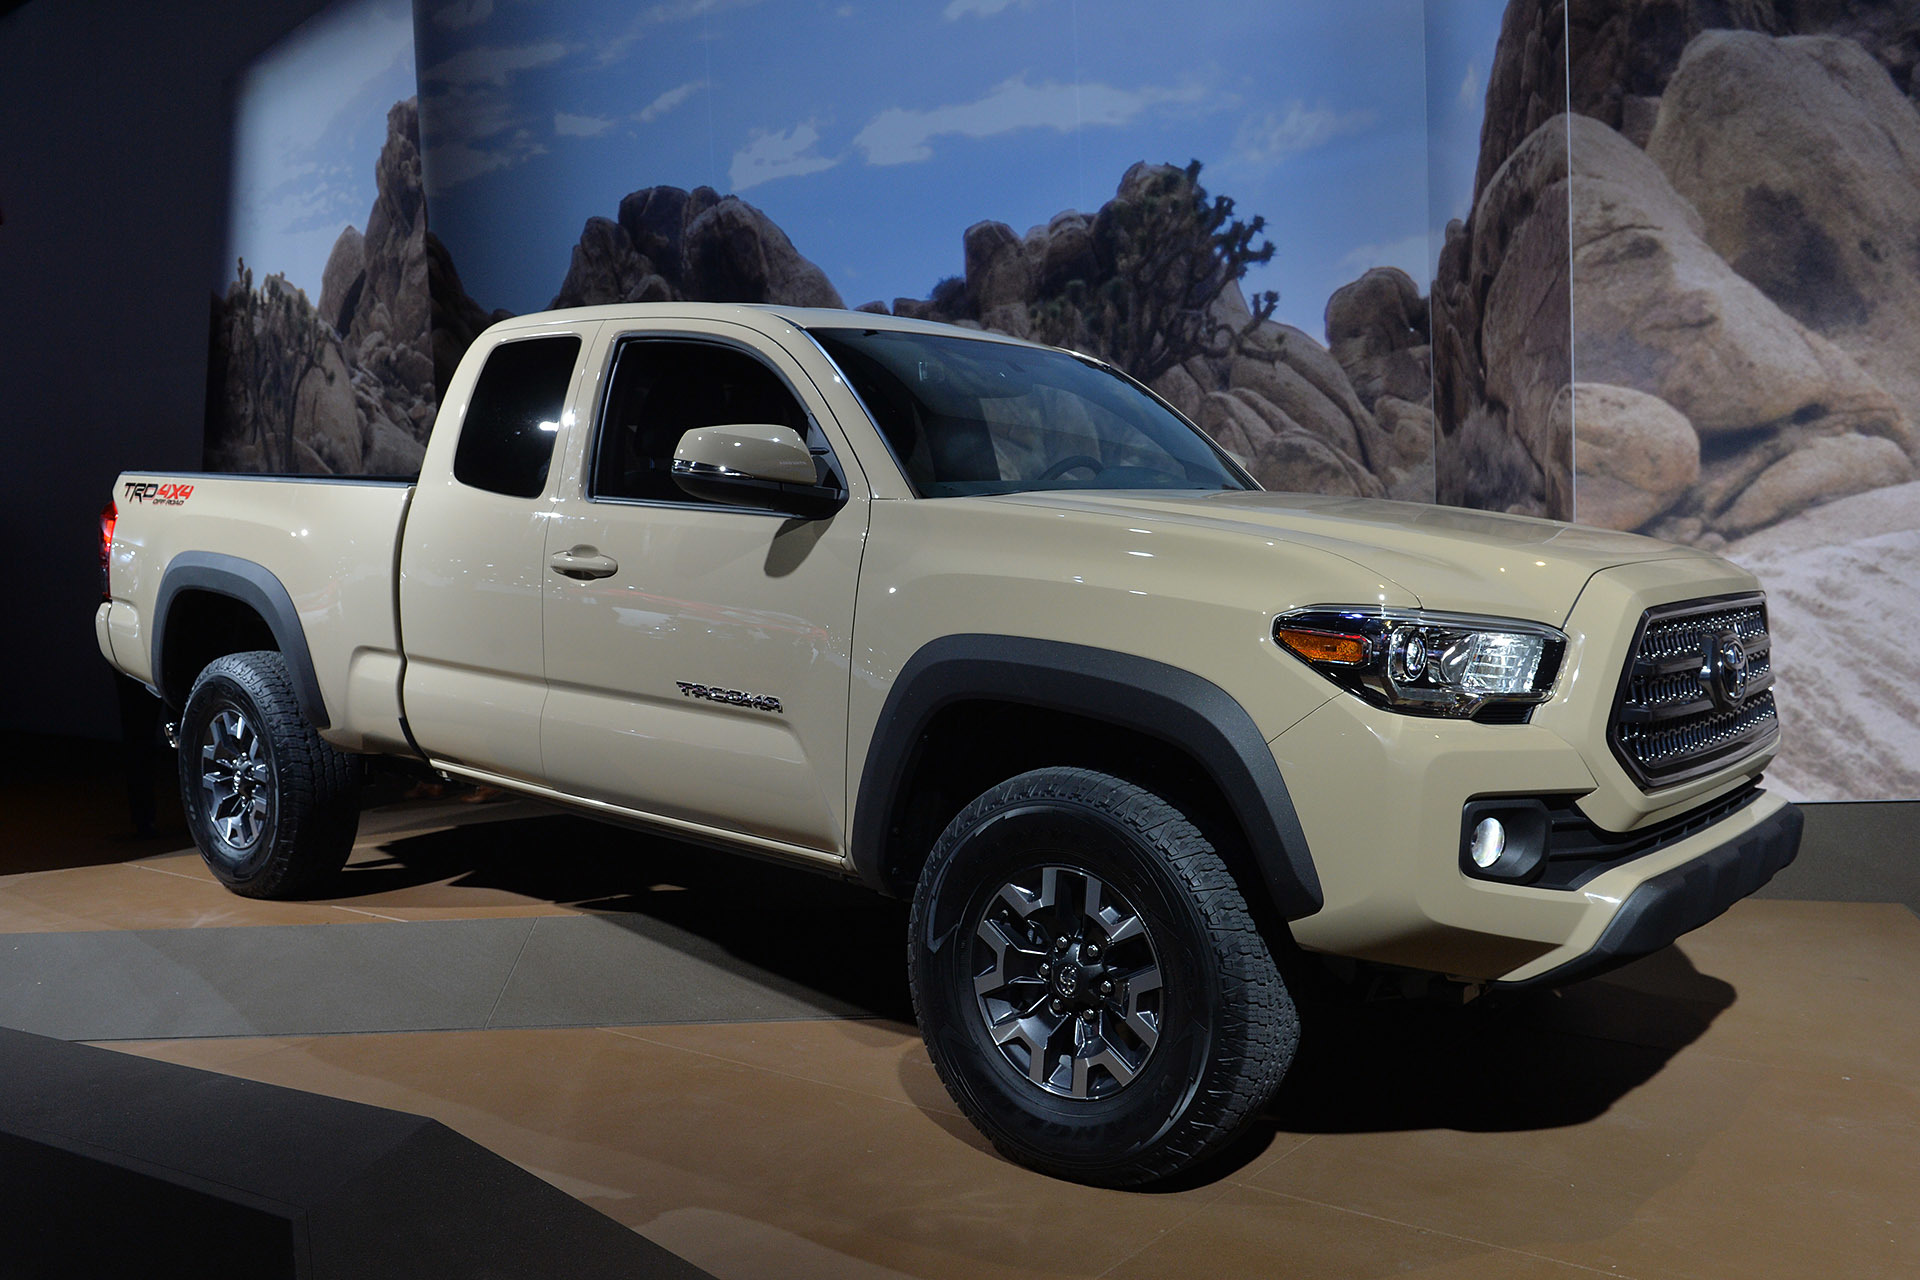 2016 toyota tacoma detroit 2015 photo gallery autoblog. Black Bedroom Furniture Sets. Home Design Ideas